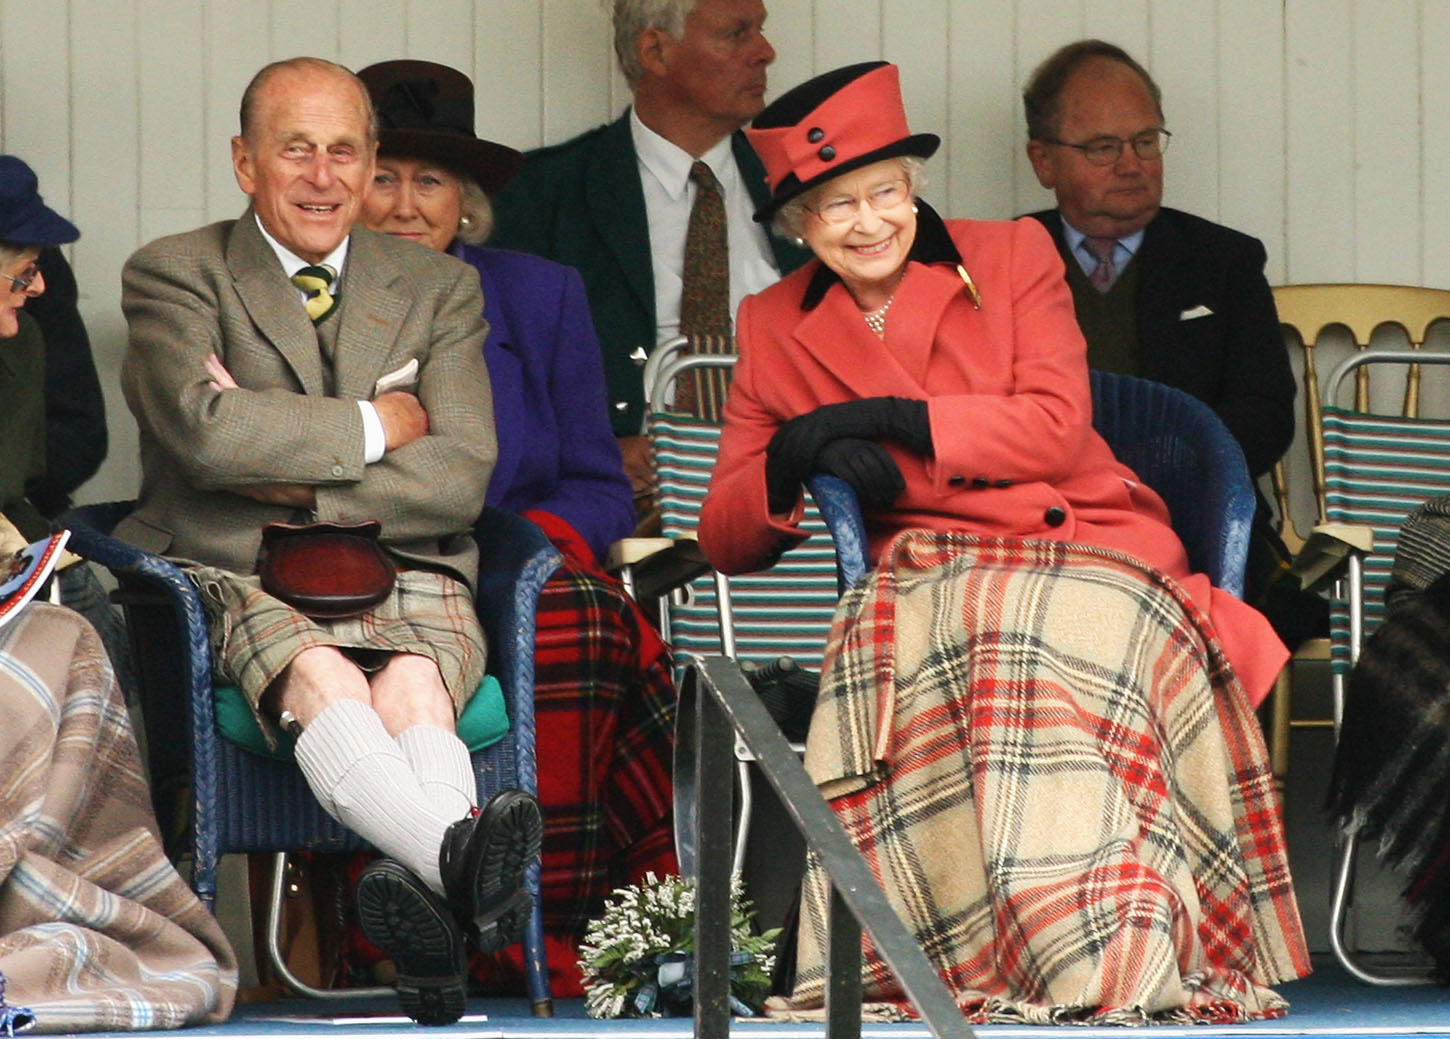 BRAEMAR, UNITED KINGDOM - SEPTEMBER 06:  TRH Queen Elizabeth II and Prince Philip, Duke of Edinburgh laugh as they watch the games during the Annual Braemar Highland Gathering on September 6, 2008 in Braemar, Scotland. The Braemar Gathering is the most famous of the Highland Games and is known Worldwide. Each year thousands of visitors descend on this small Scottish village on the first Saturday in September to watch one of the more colourful Scottish traditions. The Gathering has a long history and in its modern form it stretches back nearly 200 years.  (Photo by Chris Jackson/Getty Images)